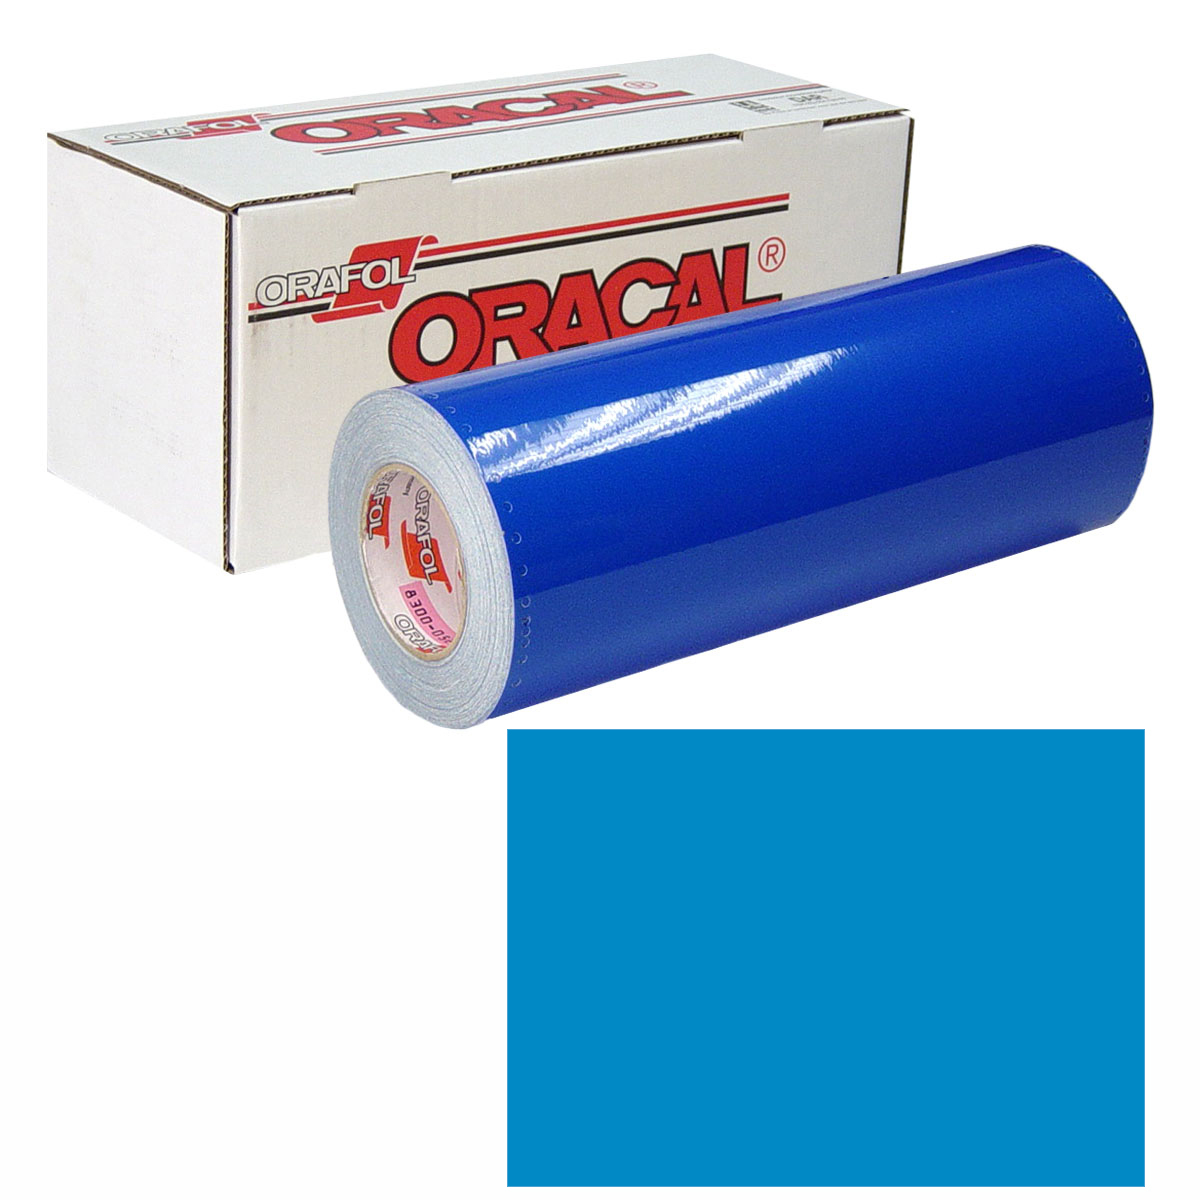 ORACAL 631 Unp 48in X 10yd 053 Light Blue